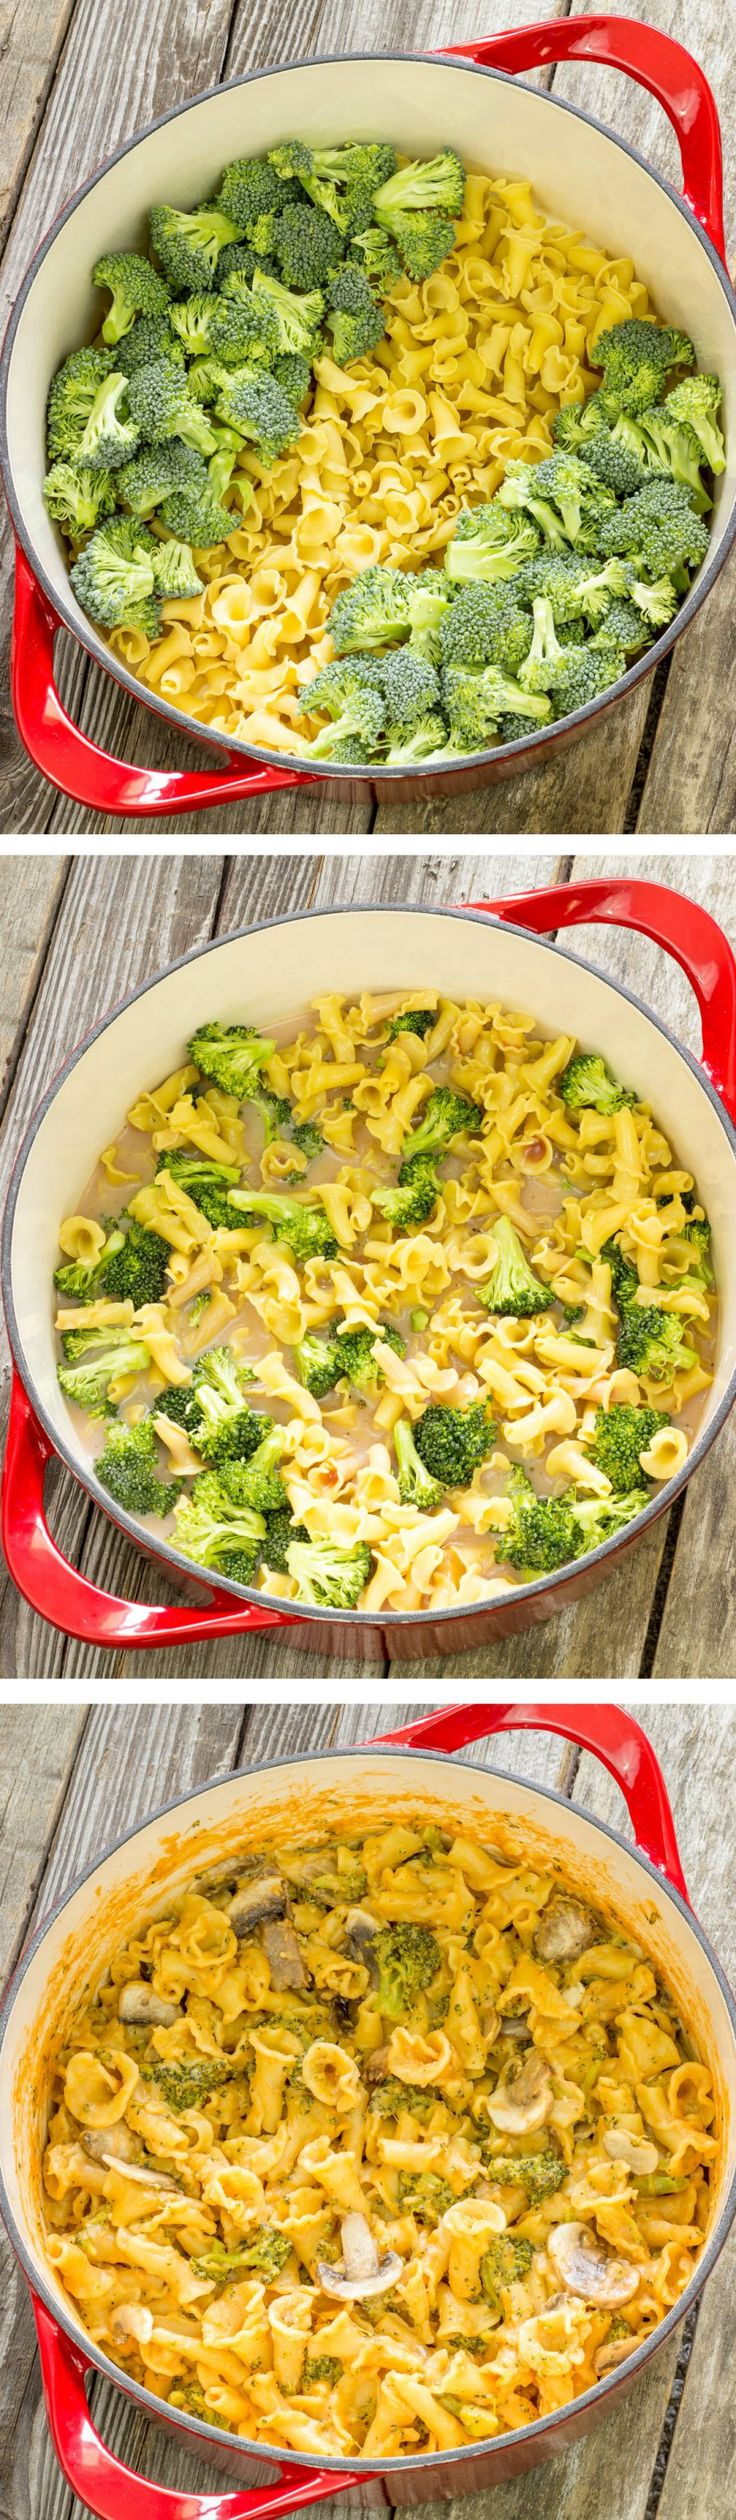 One Pot Wonder Pasta Con Broccoli...I doubled the garlic and broccoli and browned some chicken in the pan before I started then continued from there